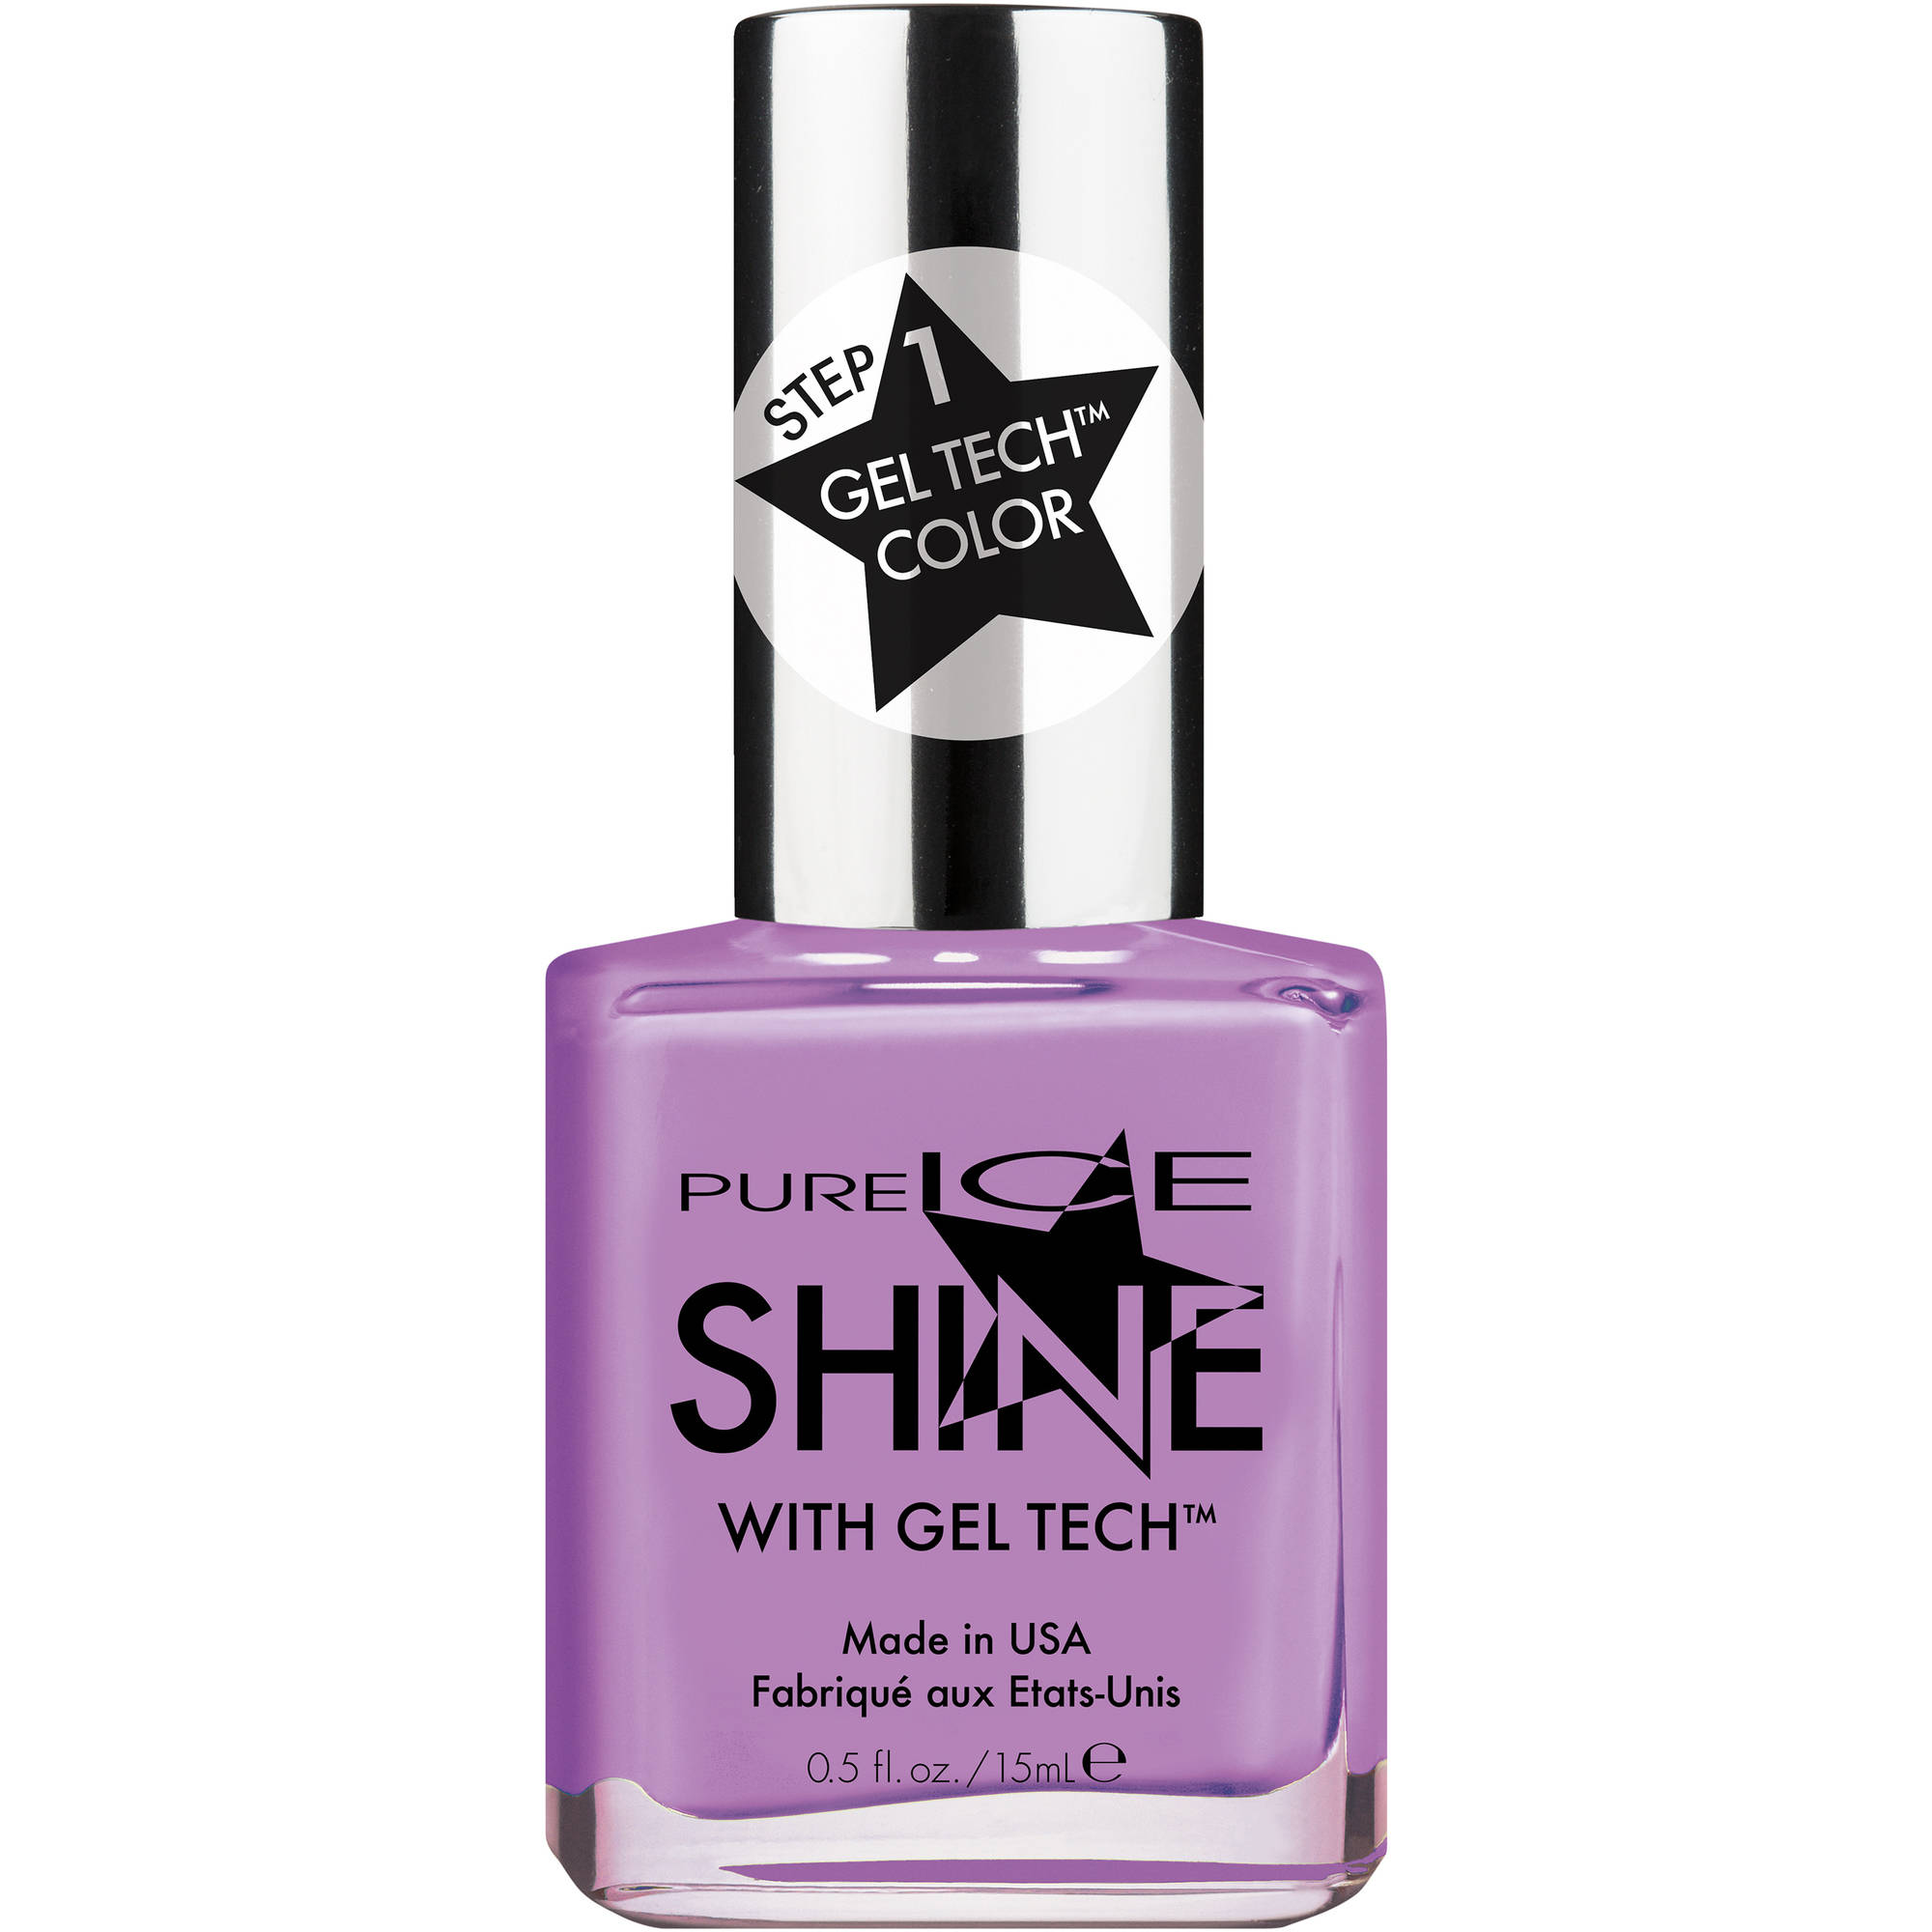 Pure Ice Shine with Gel Tech Nail Polish, Polite to Glare, 0.5 fl oz